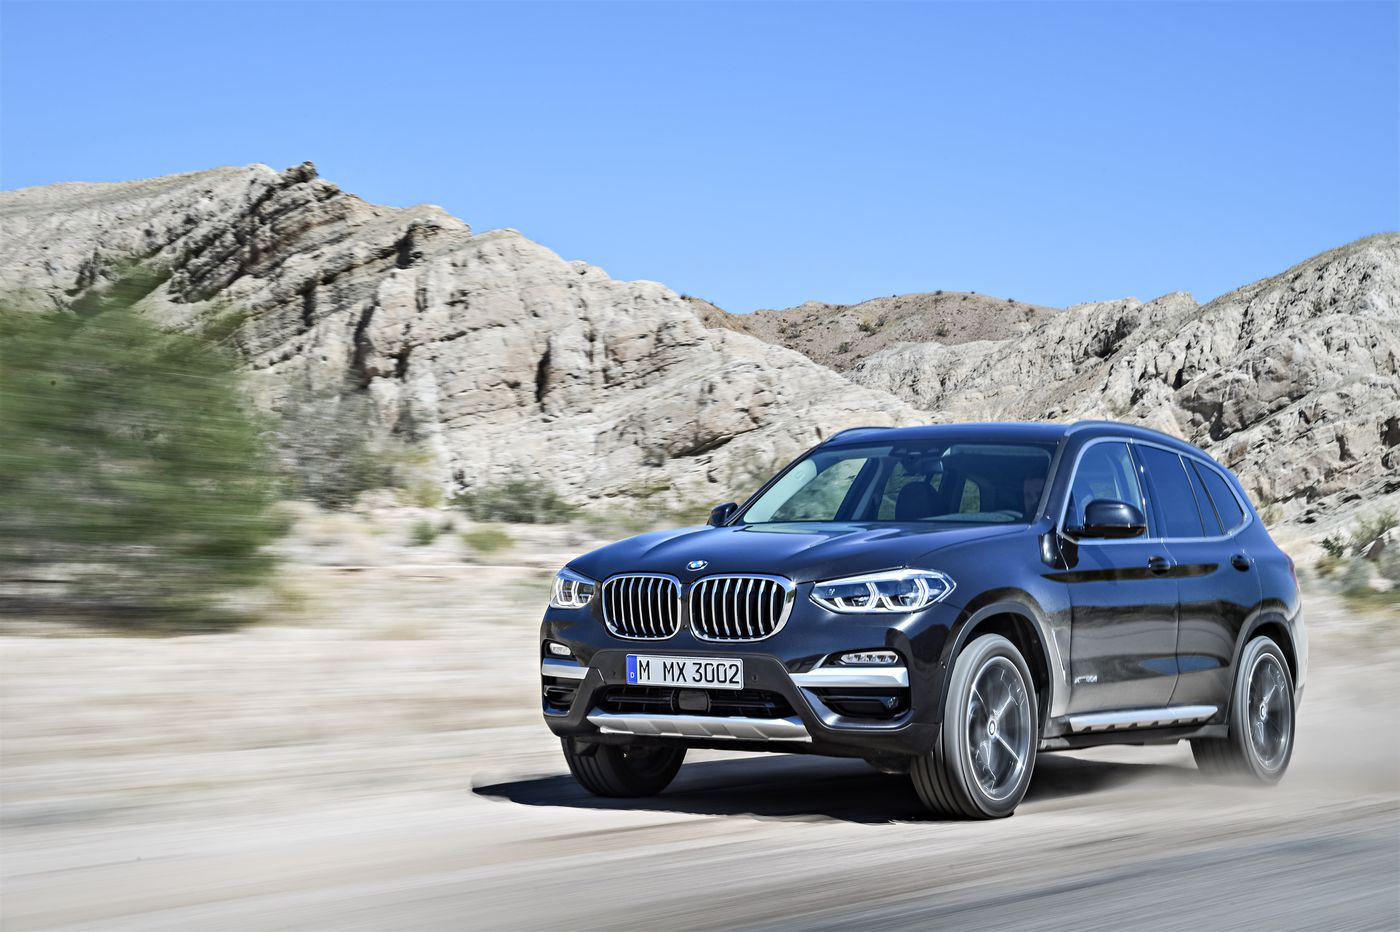 BMW X3 gets a redesign for 2018